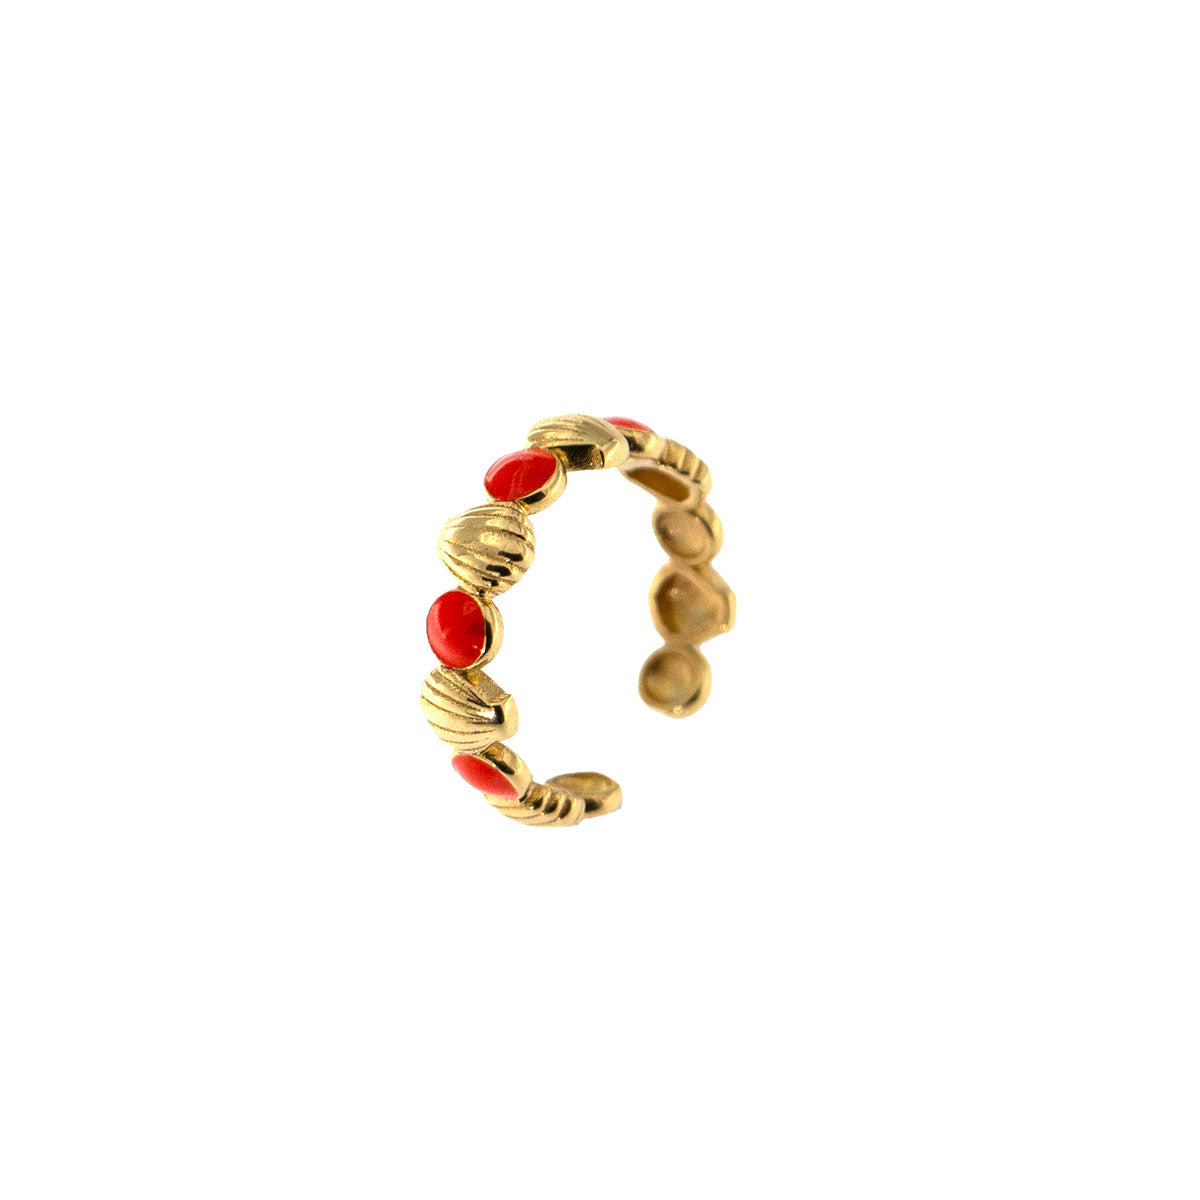 Rings - Ring - Enameled Cabochon Coral Dots and Shells - 1 | Rue des Mille